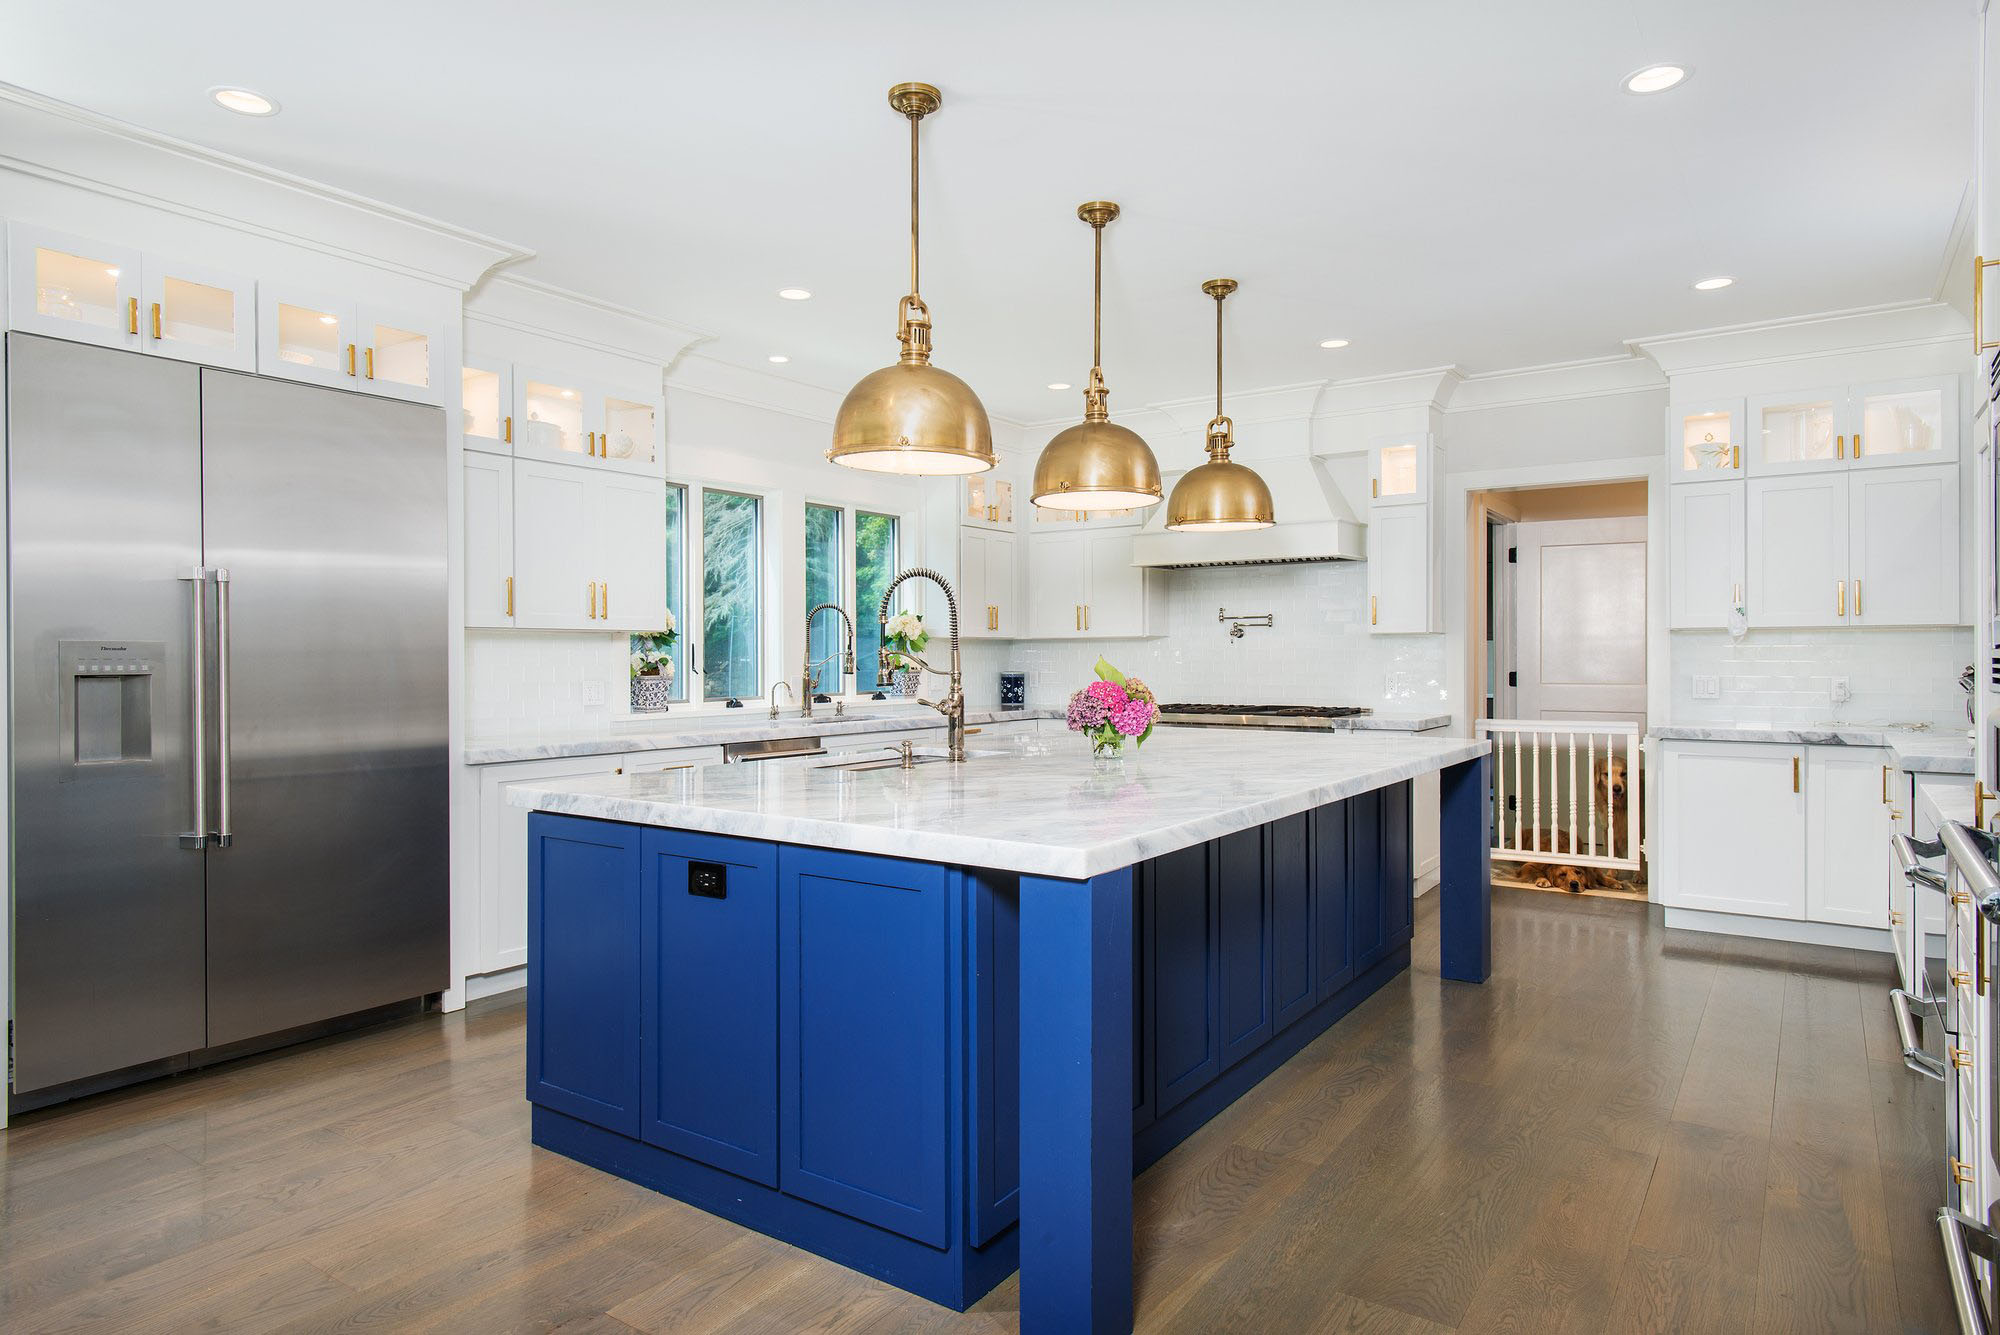 Bright blue island with white shaker style cabinets. Two kitchen cabinet colors brought together by matching marble countertops and gold hardware.